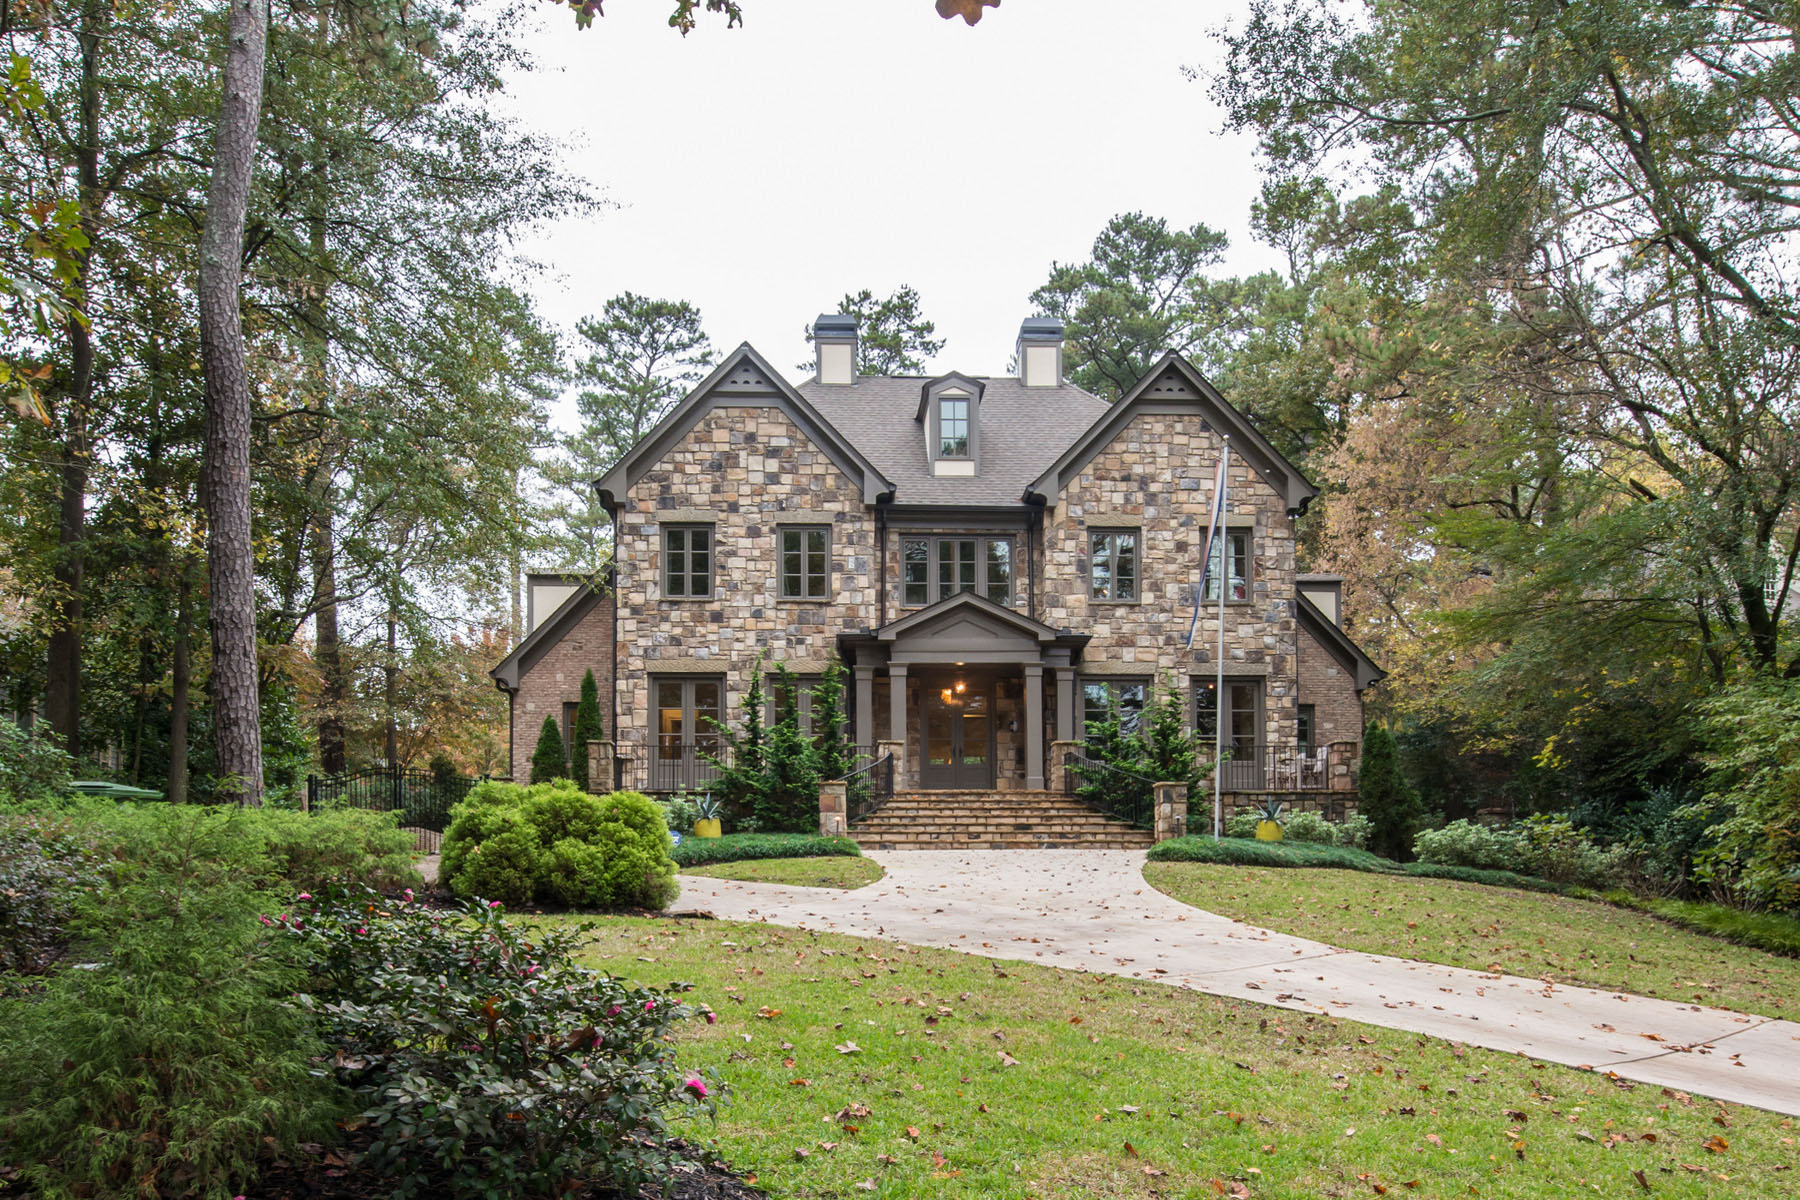 Single Family Home for Active at Brookhaven Masterpiece 4538 Club Drive NE Atlanta, Georgia 30319 United States